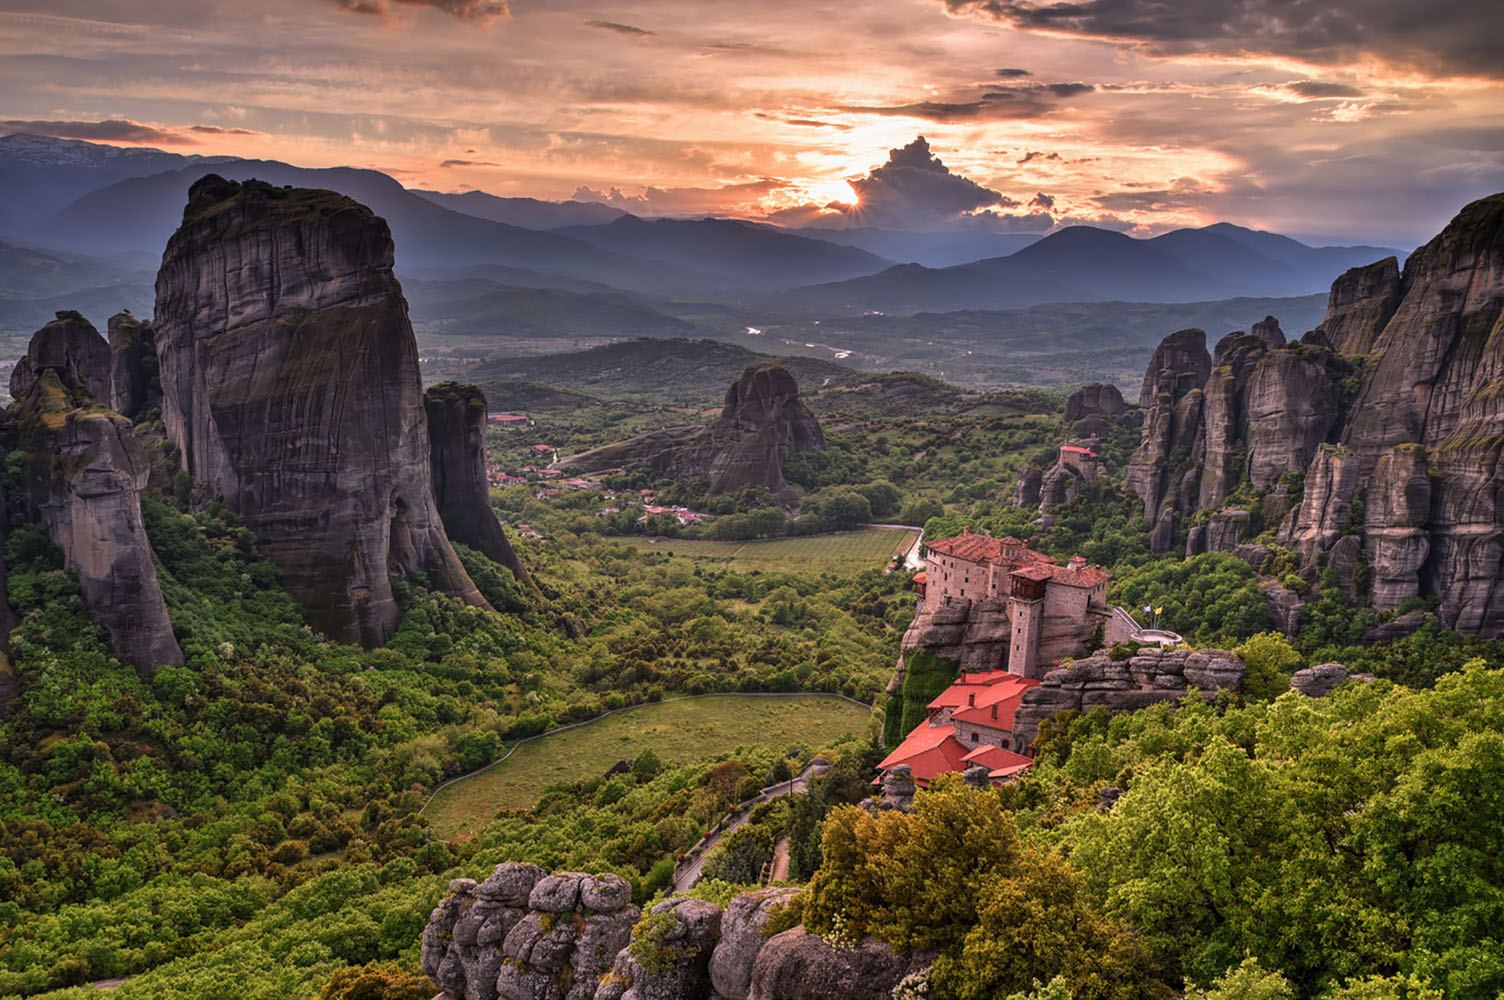 Beautiful sunset on the valley of the monasteries of Meteora, Greece